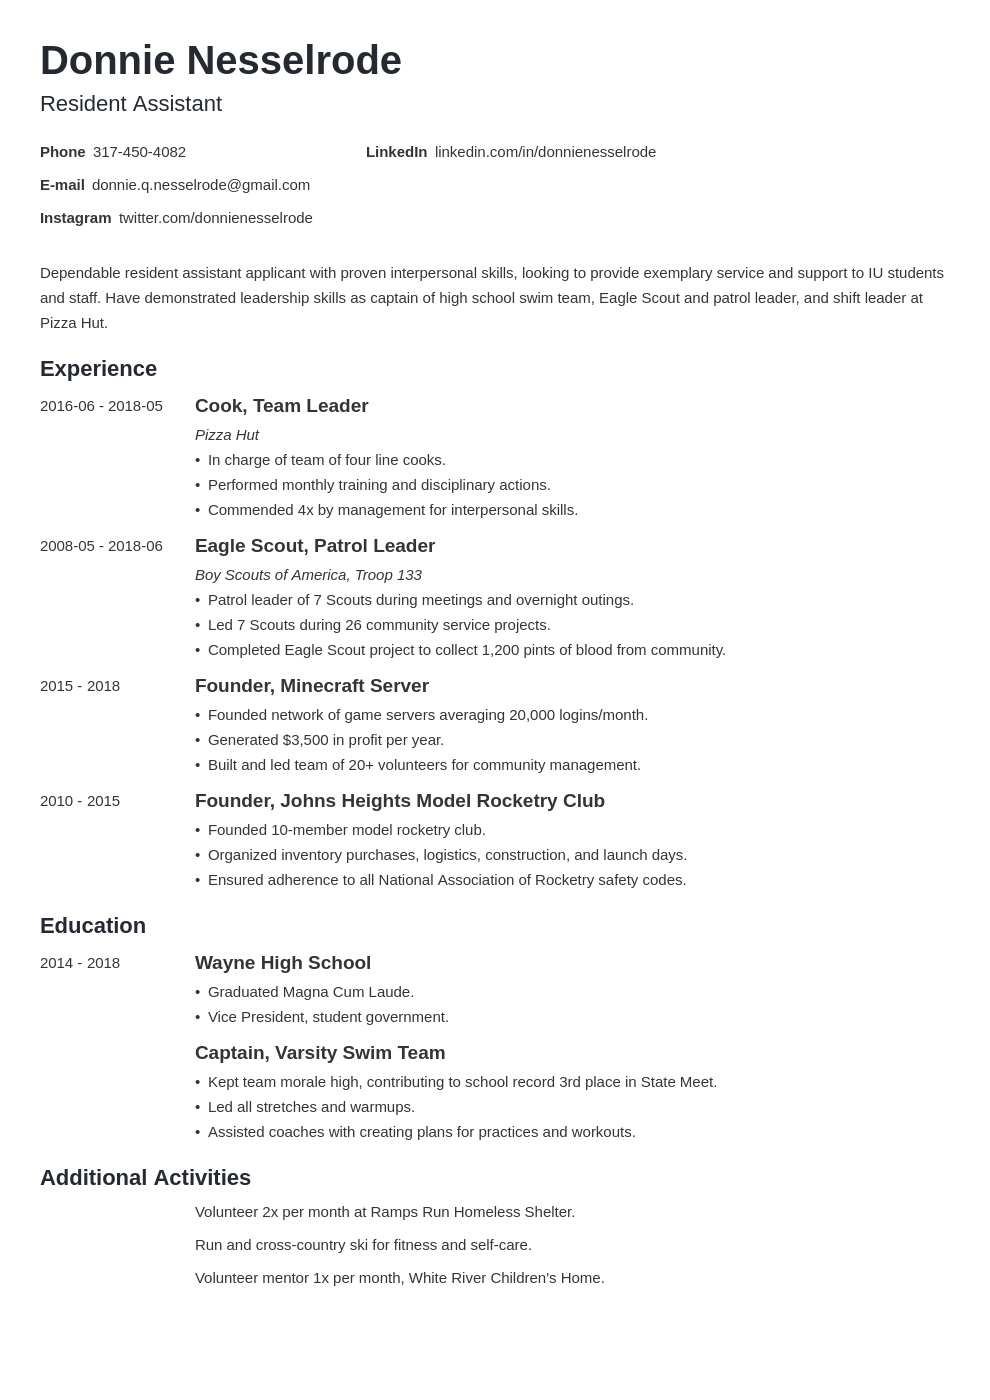 resident assistant resume example template minimo